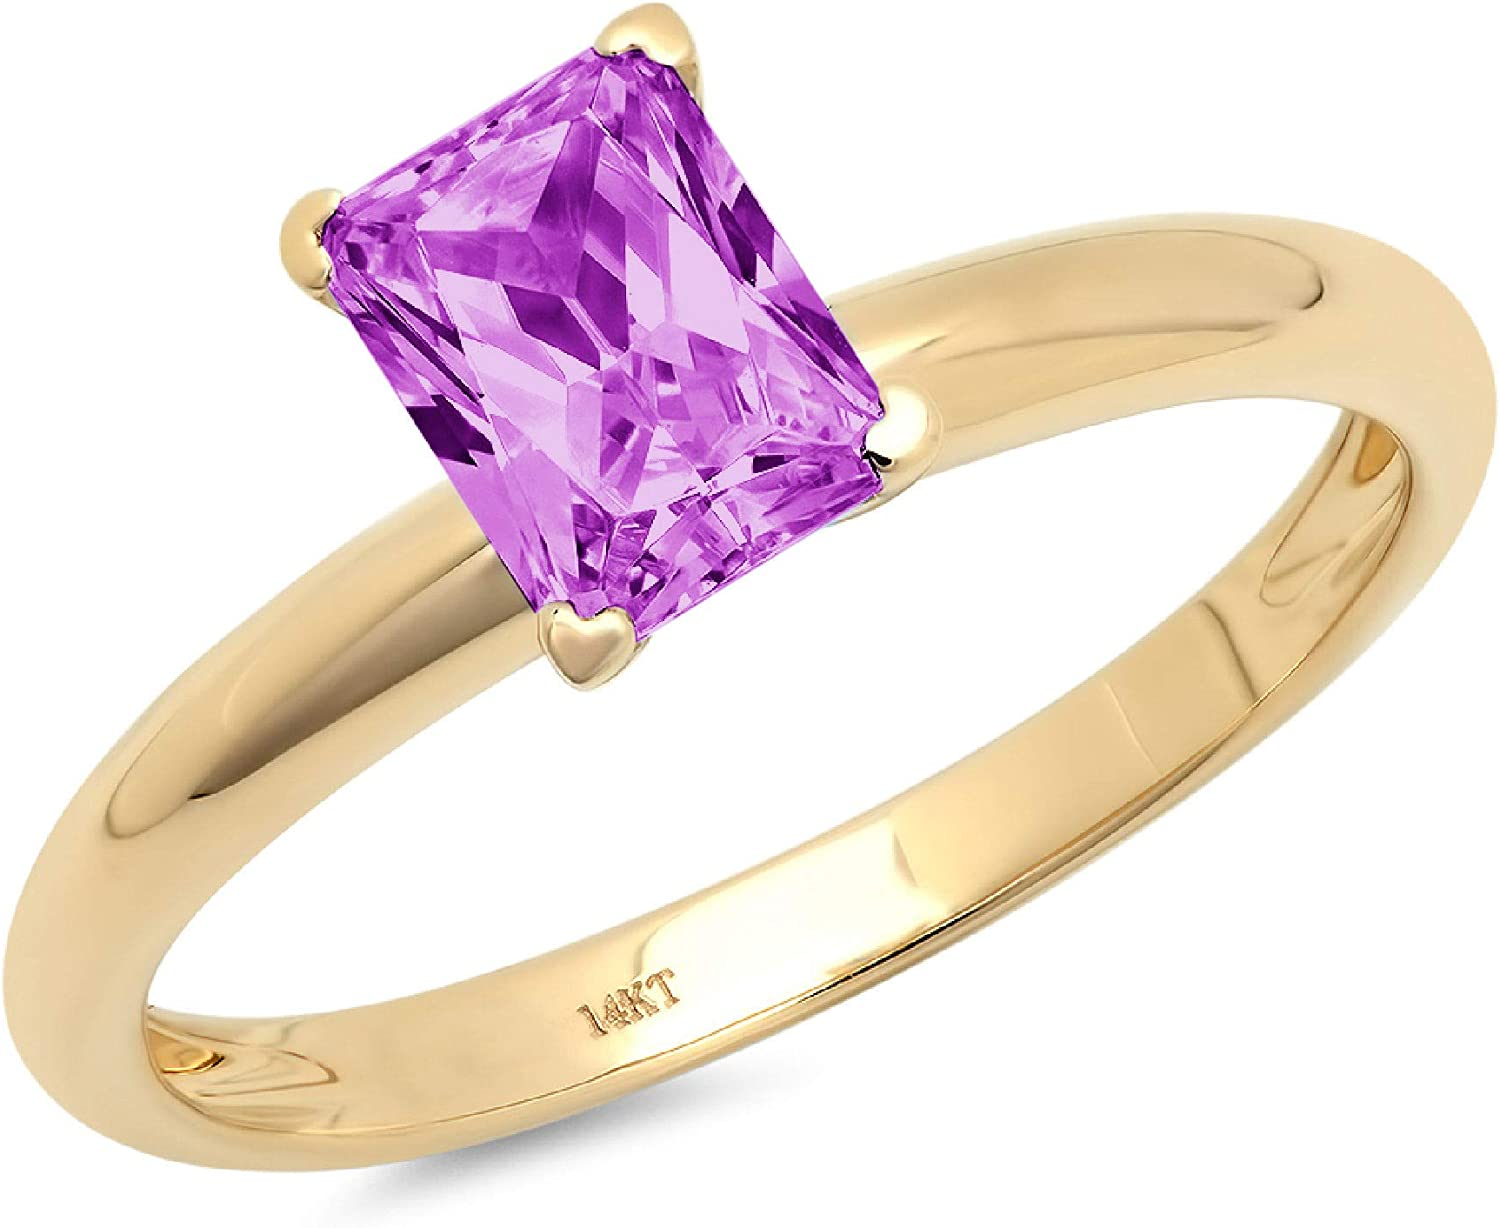 0.95 ct Brilliant Emerald Cut Solitaire Flawless Simulated CZ Purple Alexandrite Ideal VVS1 4-Prong Engagement Wedding Bridal Promise Anniversary Designer Ring Solid 14k Yellow Gold for Women